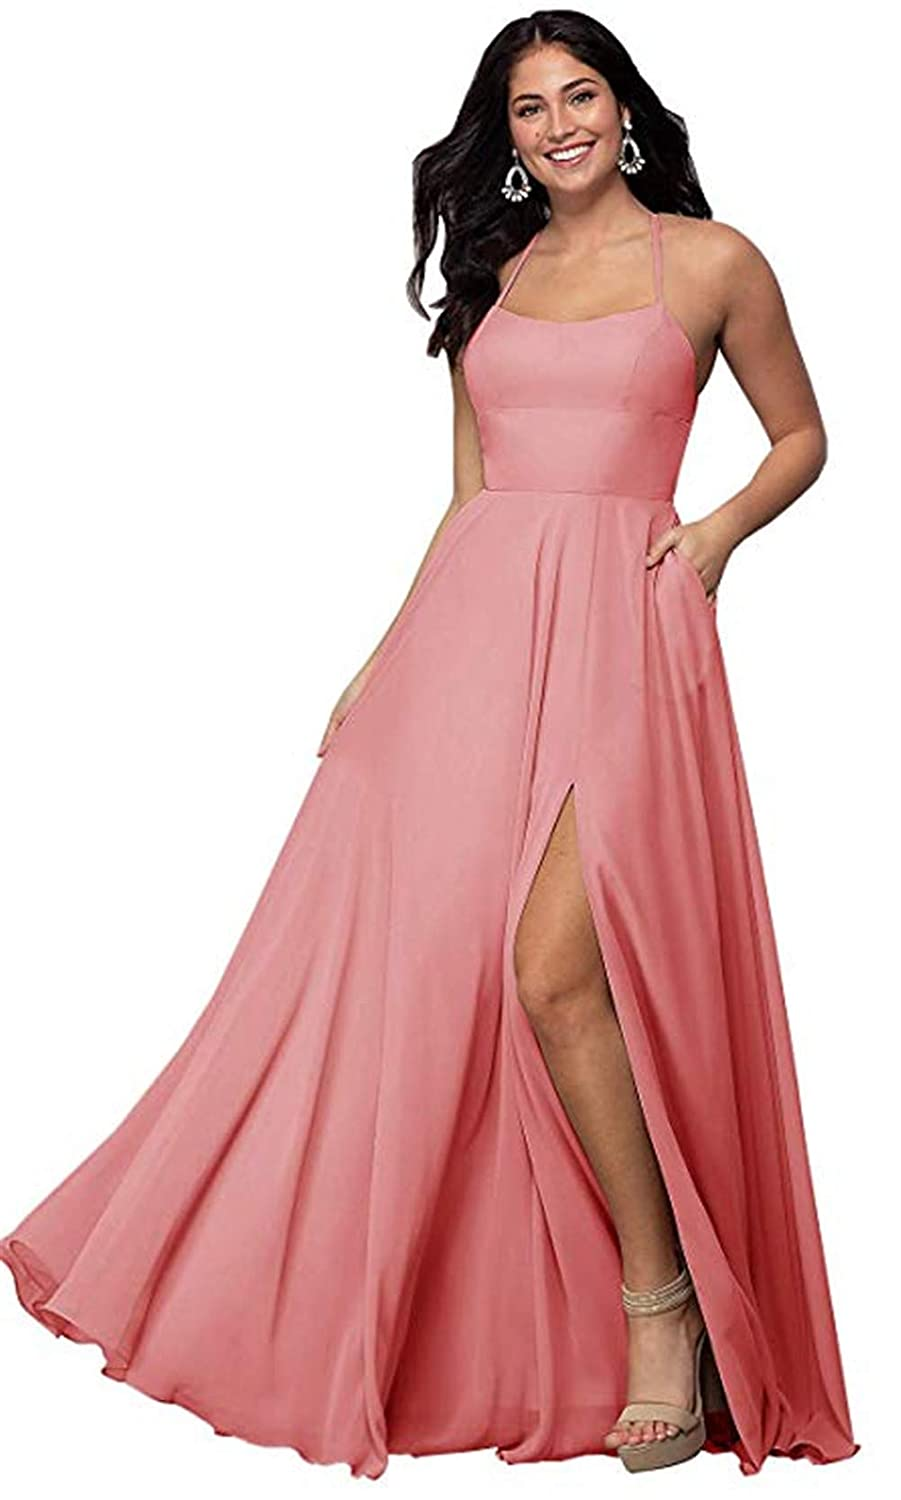 Coral Halter A Line Long Bridesmaid Dresses Split Prom Evening Gowns with Pocket